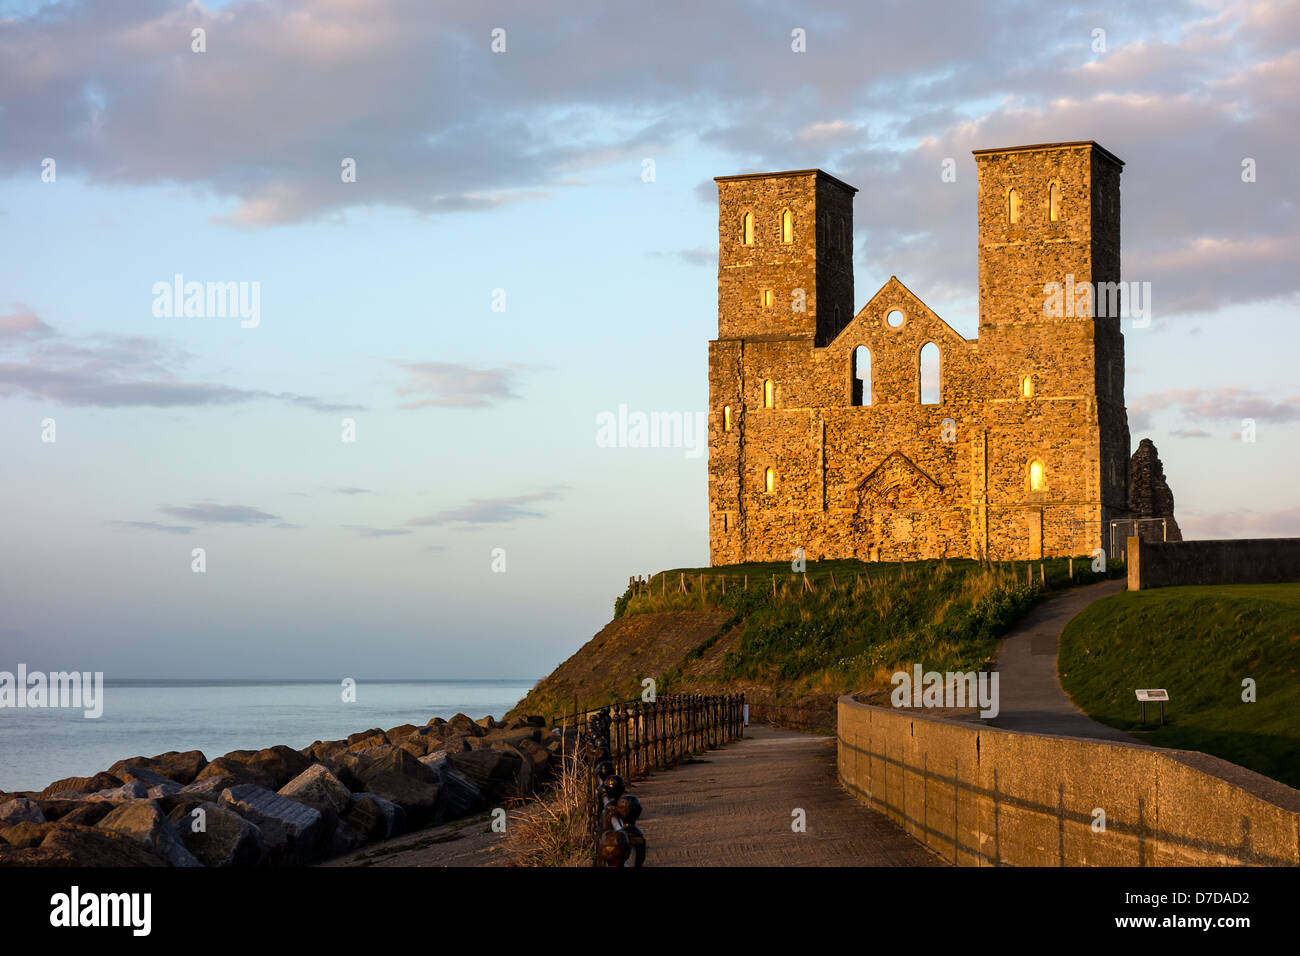 Reculver Towers Herne Bay Kent England at Sunset Stock Photo